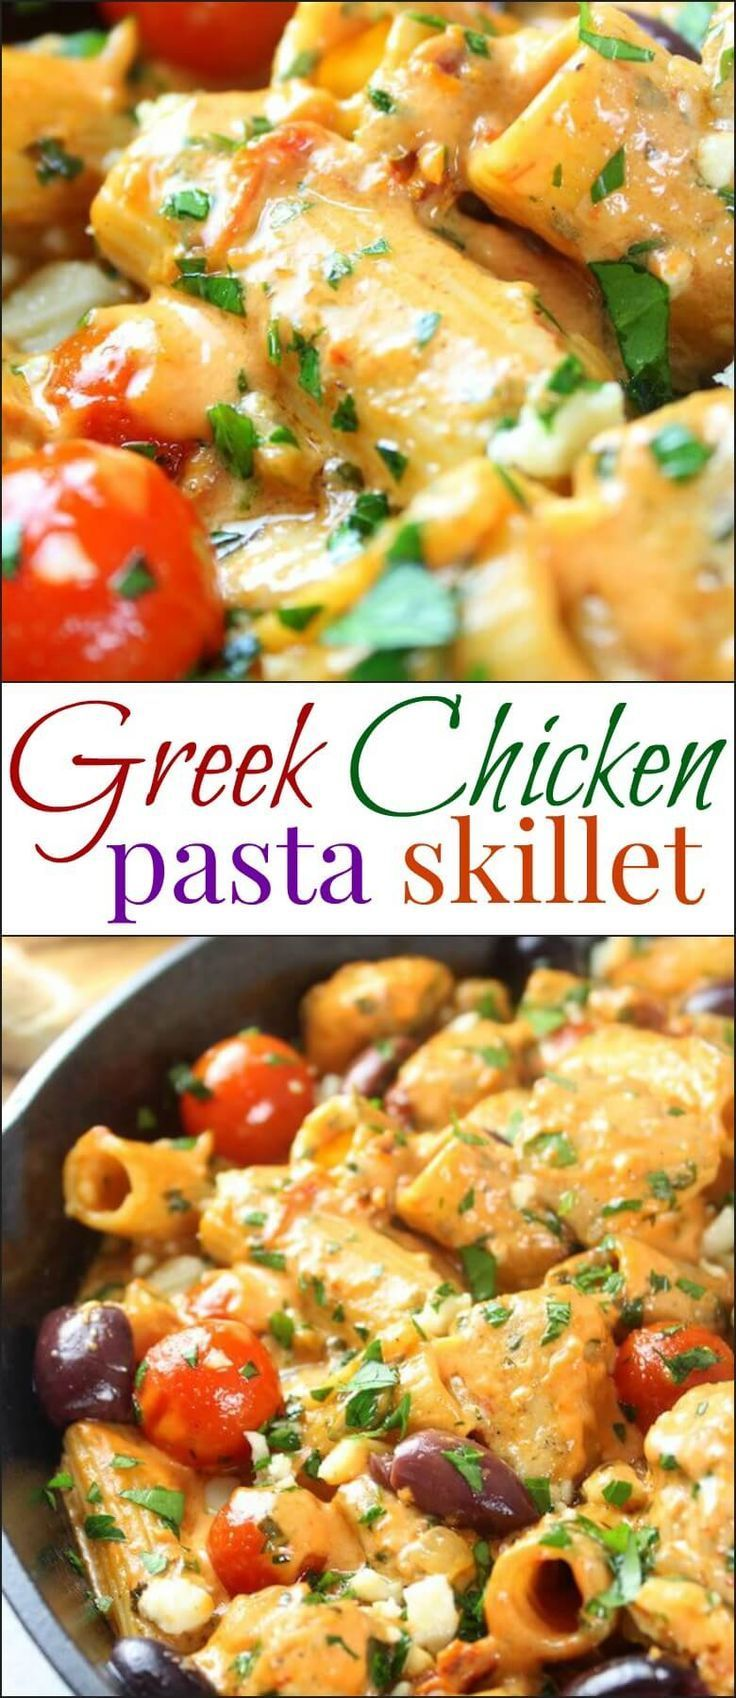 This Greek Chicken Pasta Skillet is zesty and creamy and full of all your favorite Mediterranean flavors!  With sun-dried tomatoes, feta cheese, Kalamata Olives, garlic, chicken, pasta and more – it's truly a meal the whole family will love! via @ohsweetbasil: